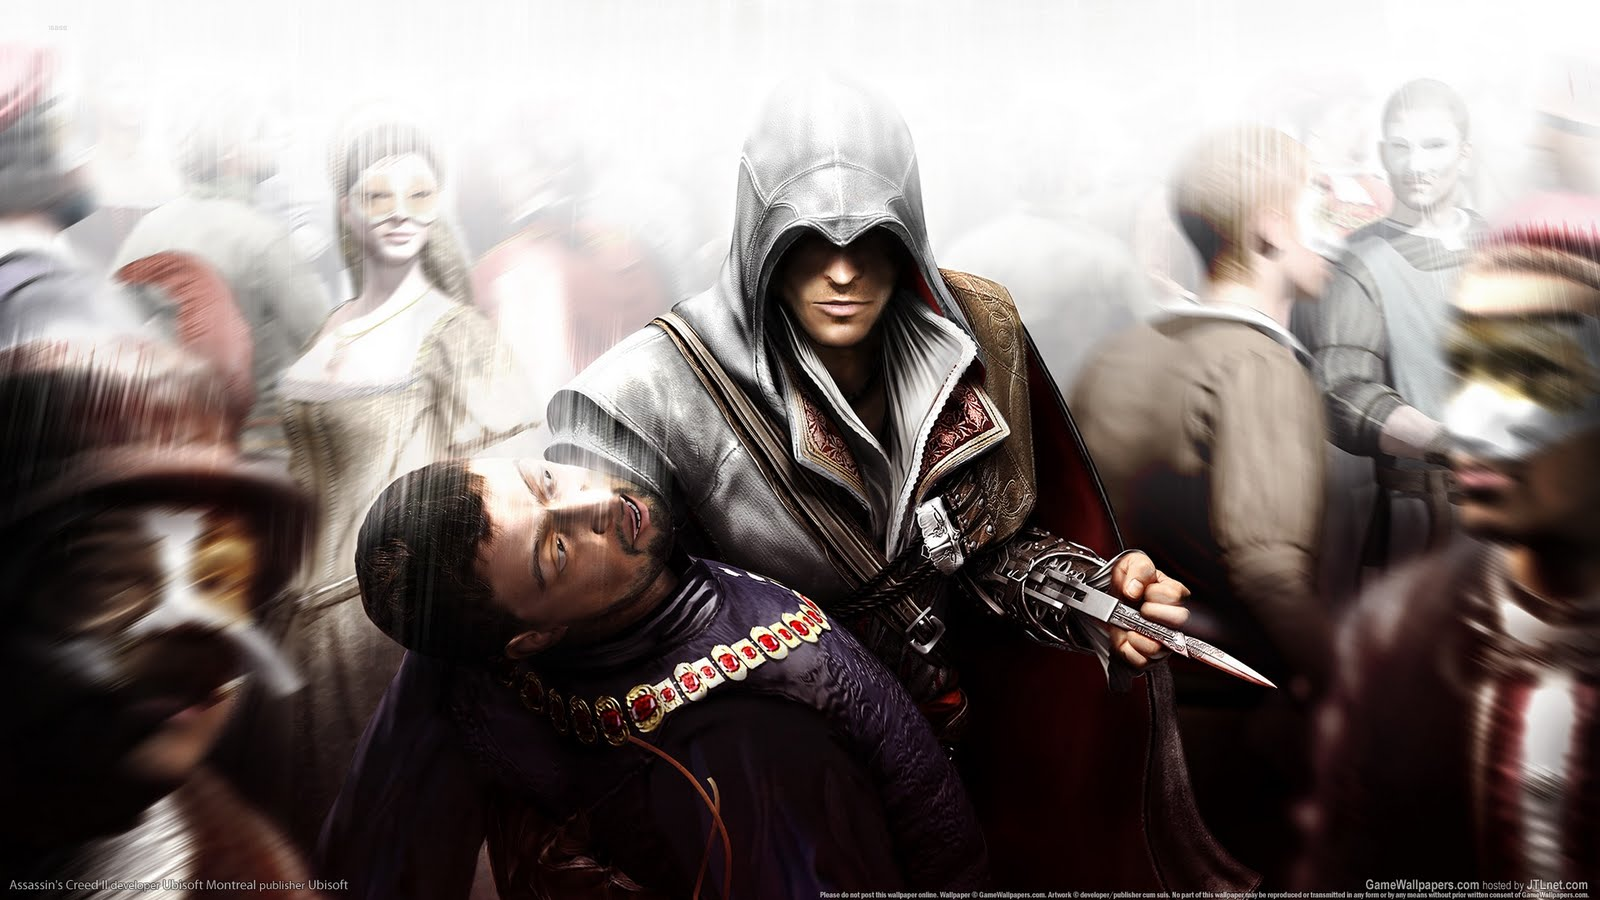 http://1.bp.blogspot.com/-Bia5T5eJrzs/Tdo449mZj-I/AAAAAAAAAfA/PelDuE1tyJA/s1600/wallpaper_assassins_creed_ii_02_1920x1080.jpg